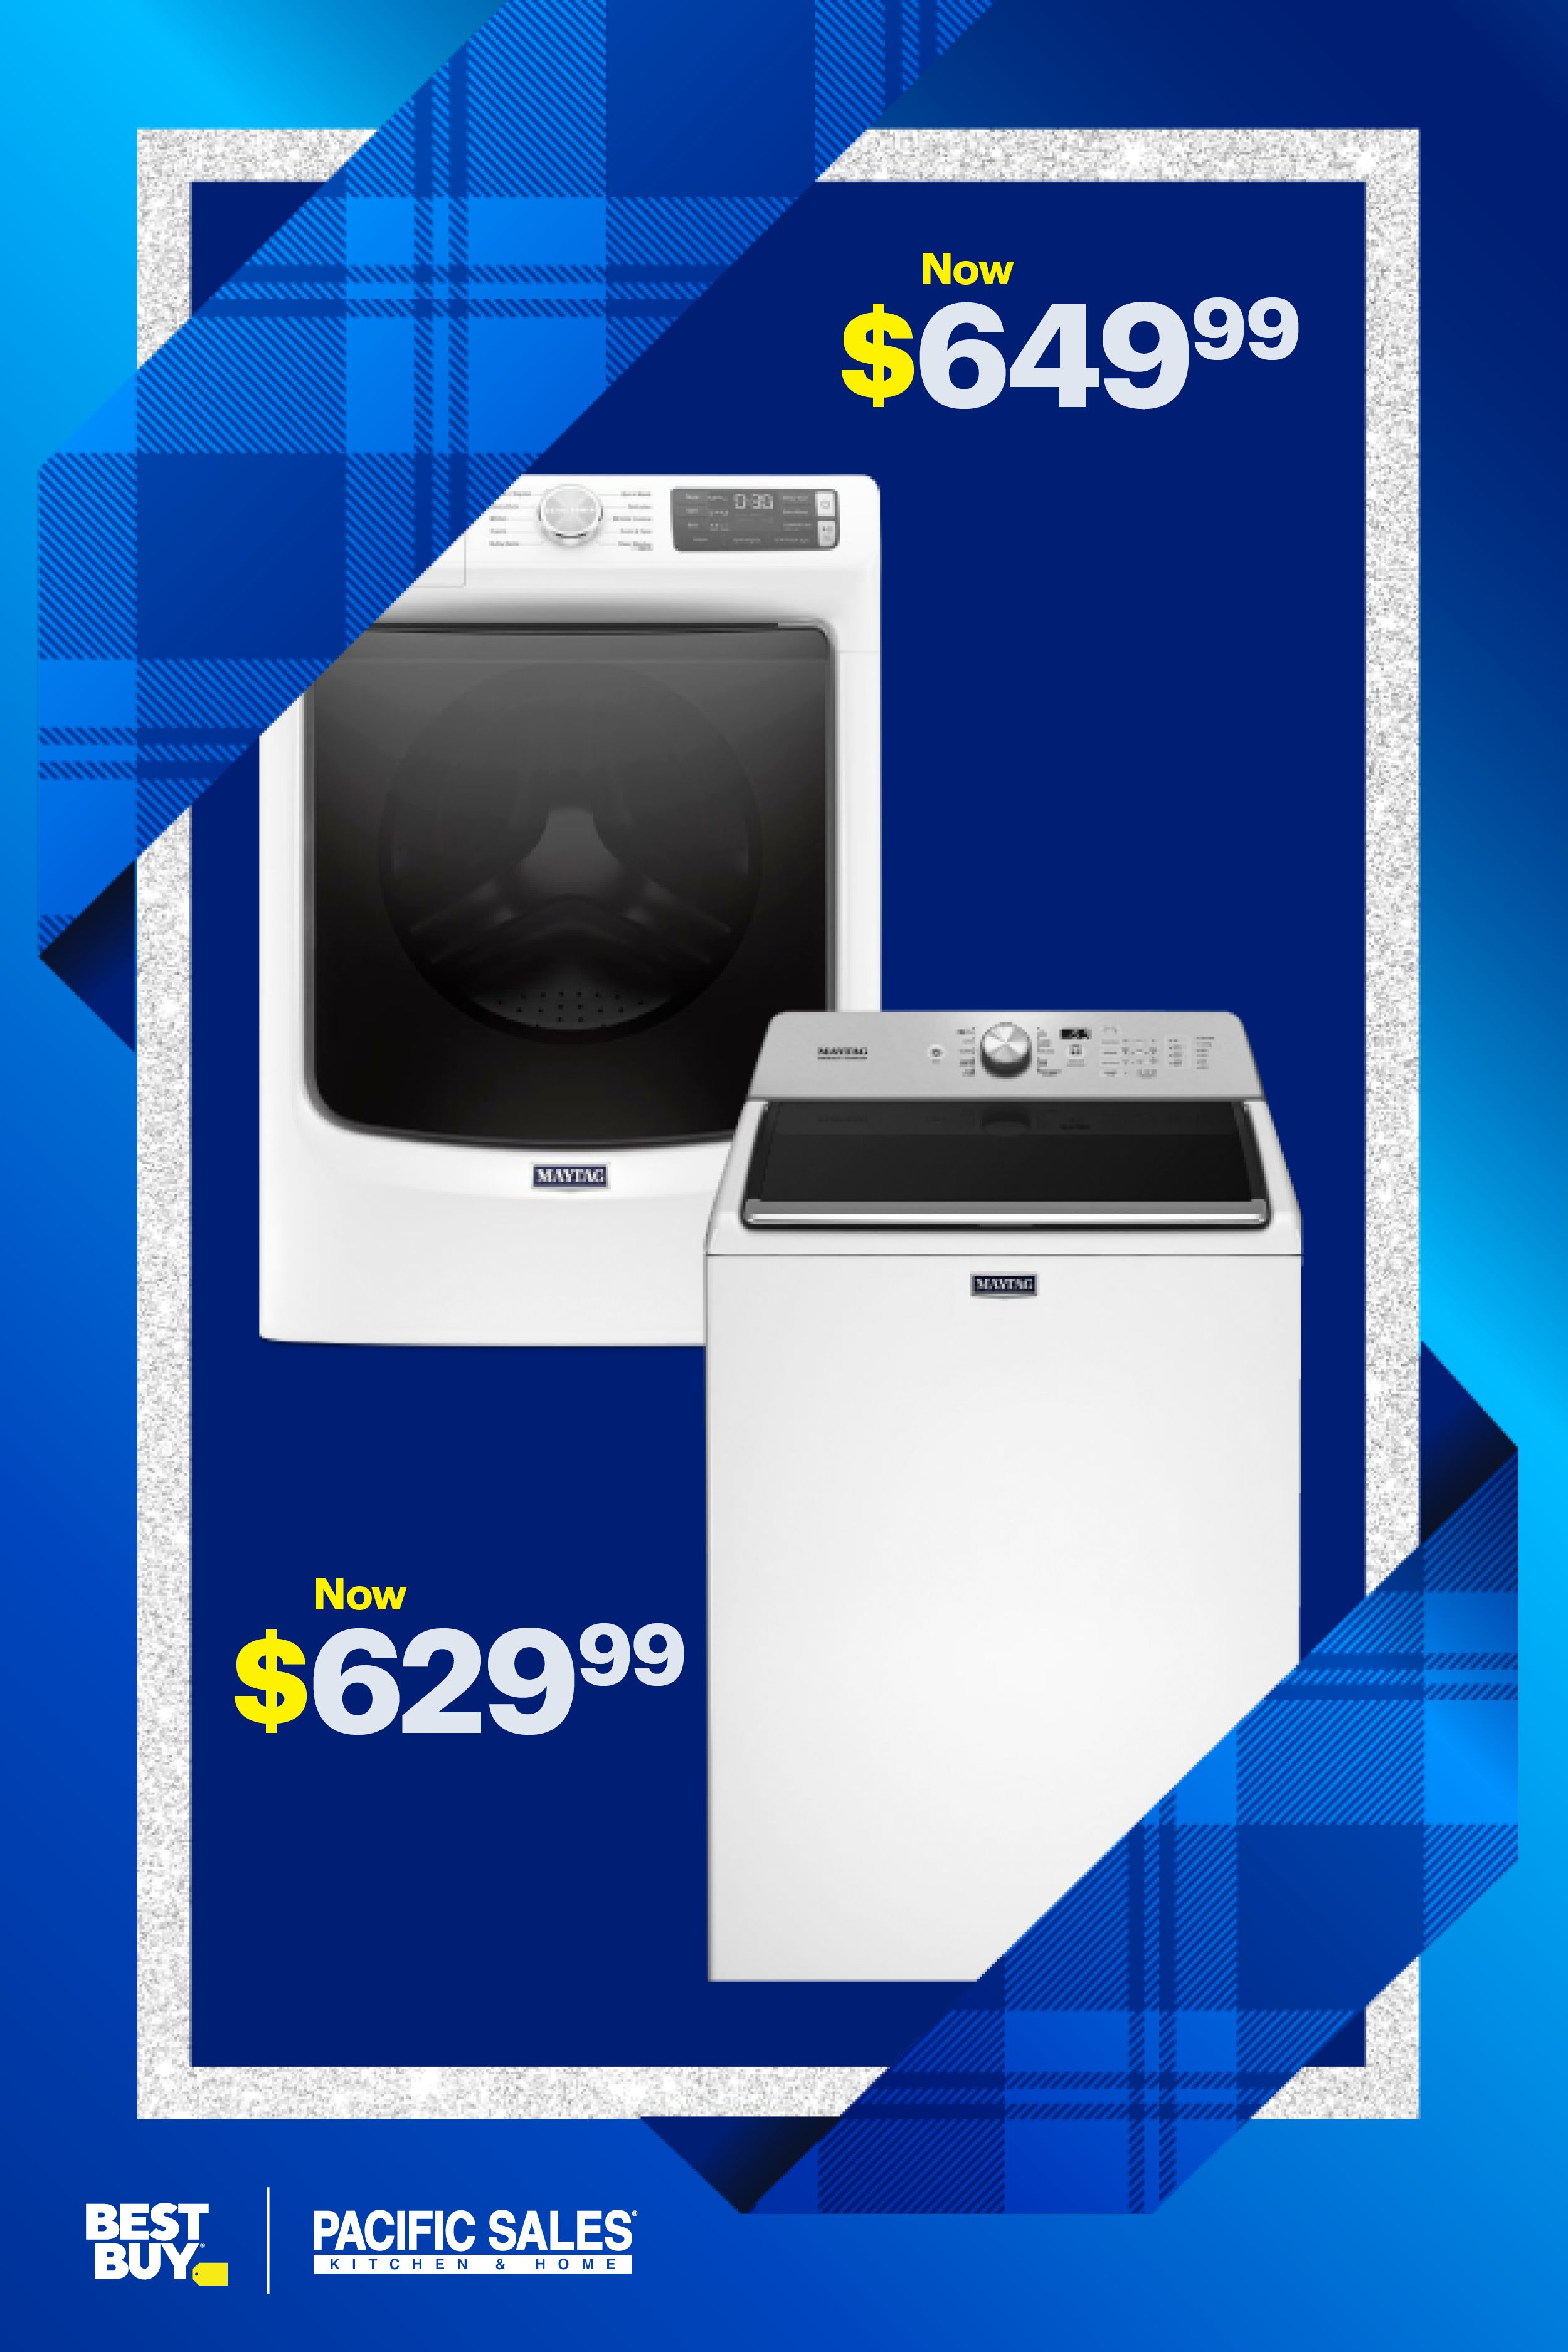 Maytag washers and dryers as low as 469.99. Yep, you read